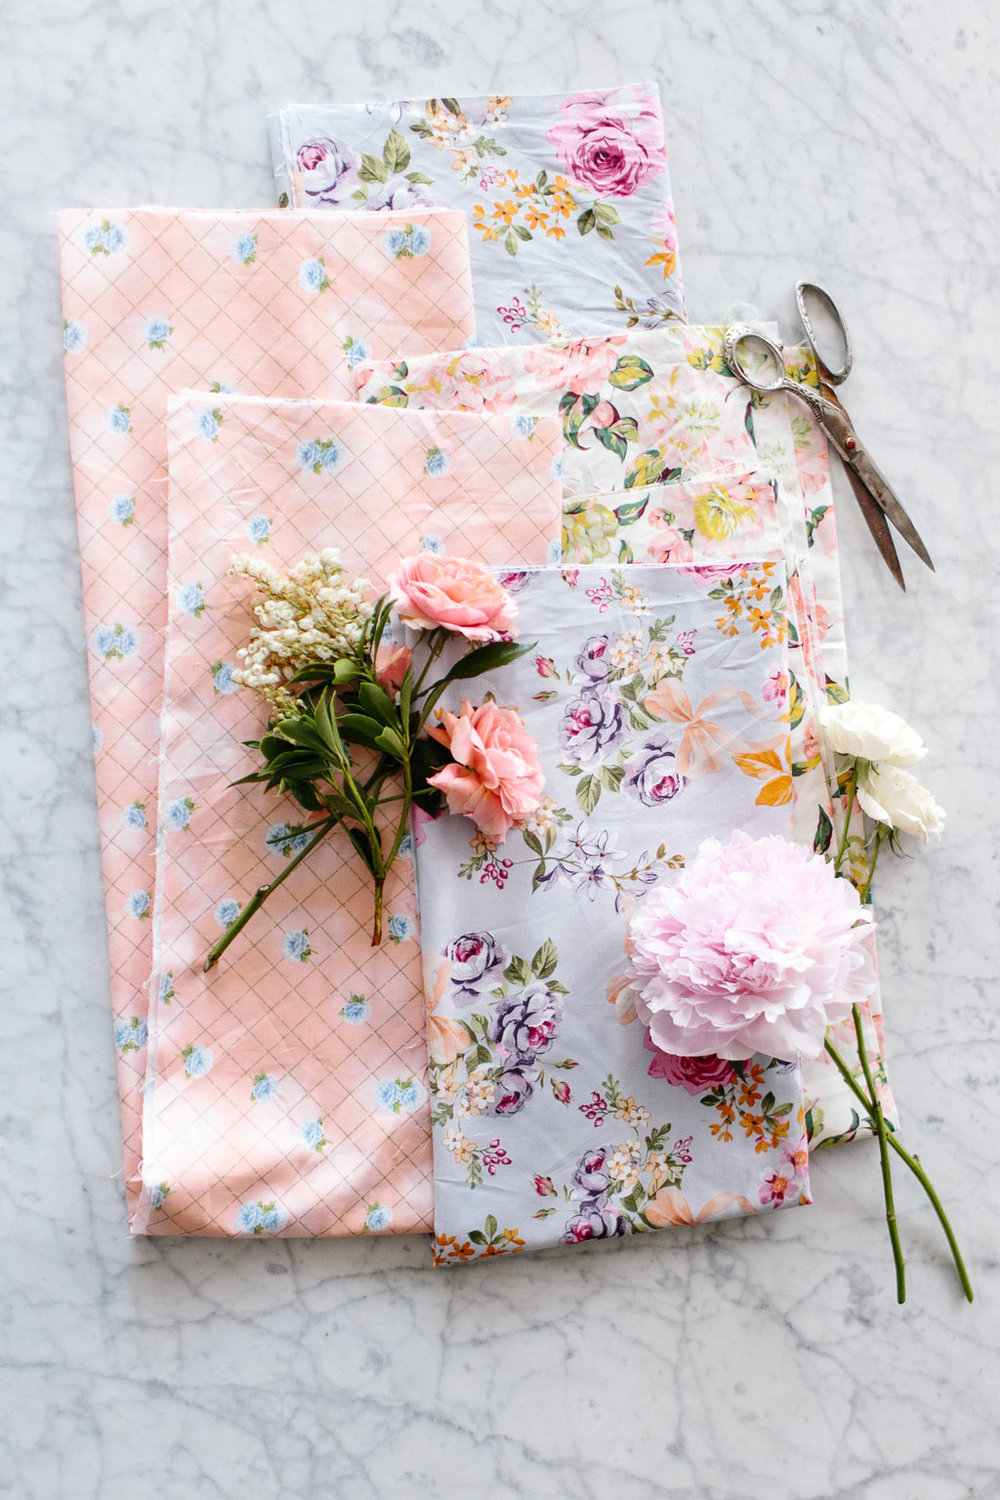 Camille Styles - DIY Mother's Day Wrapping